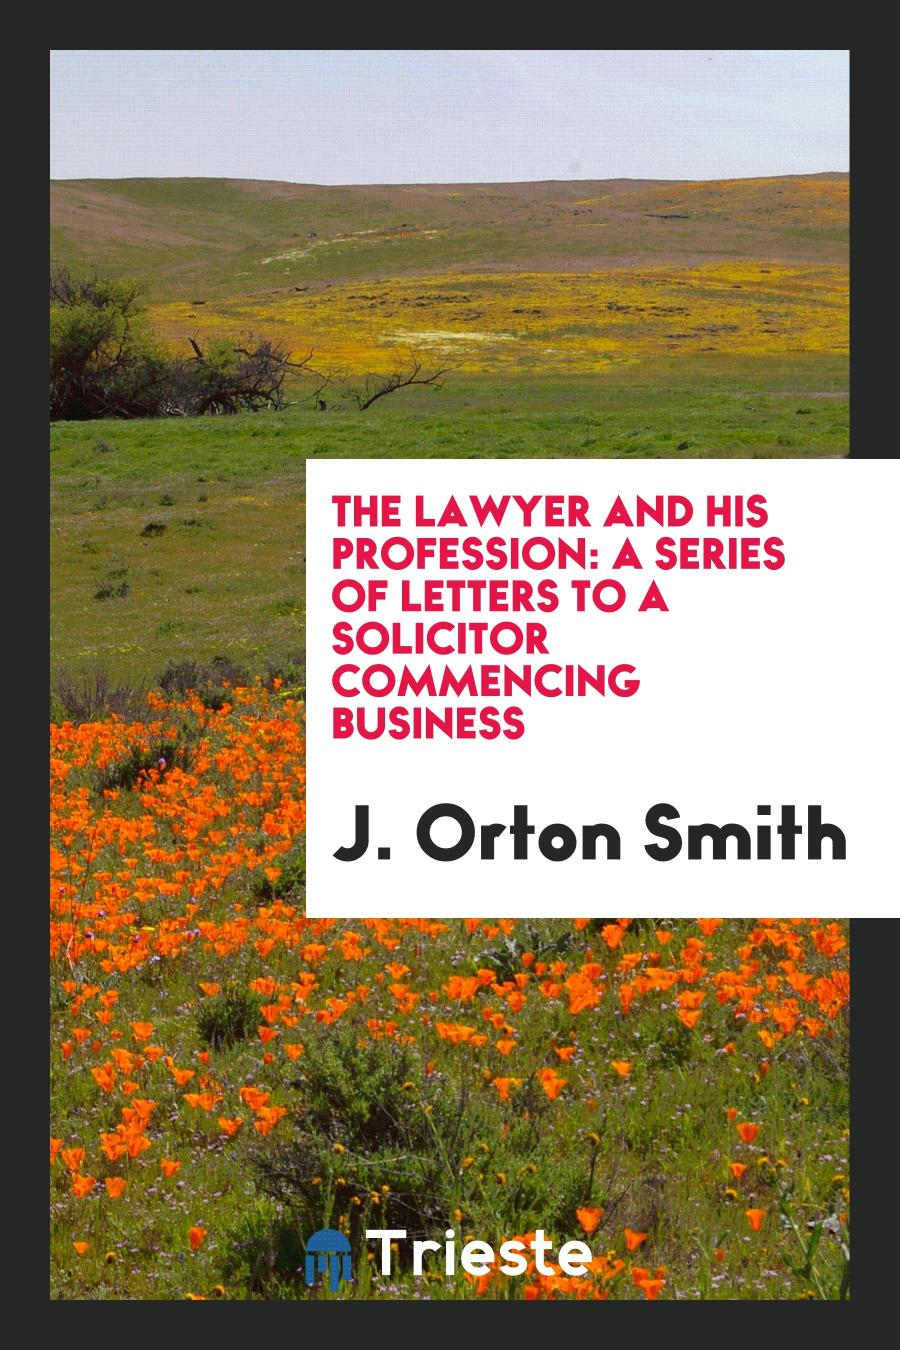 The Lawyer and His Profession: A Series of Letters to a Solicitor Commencing Business